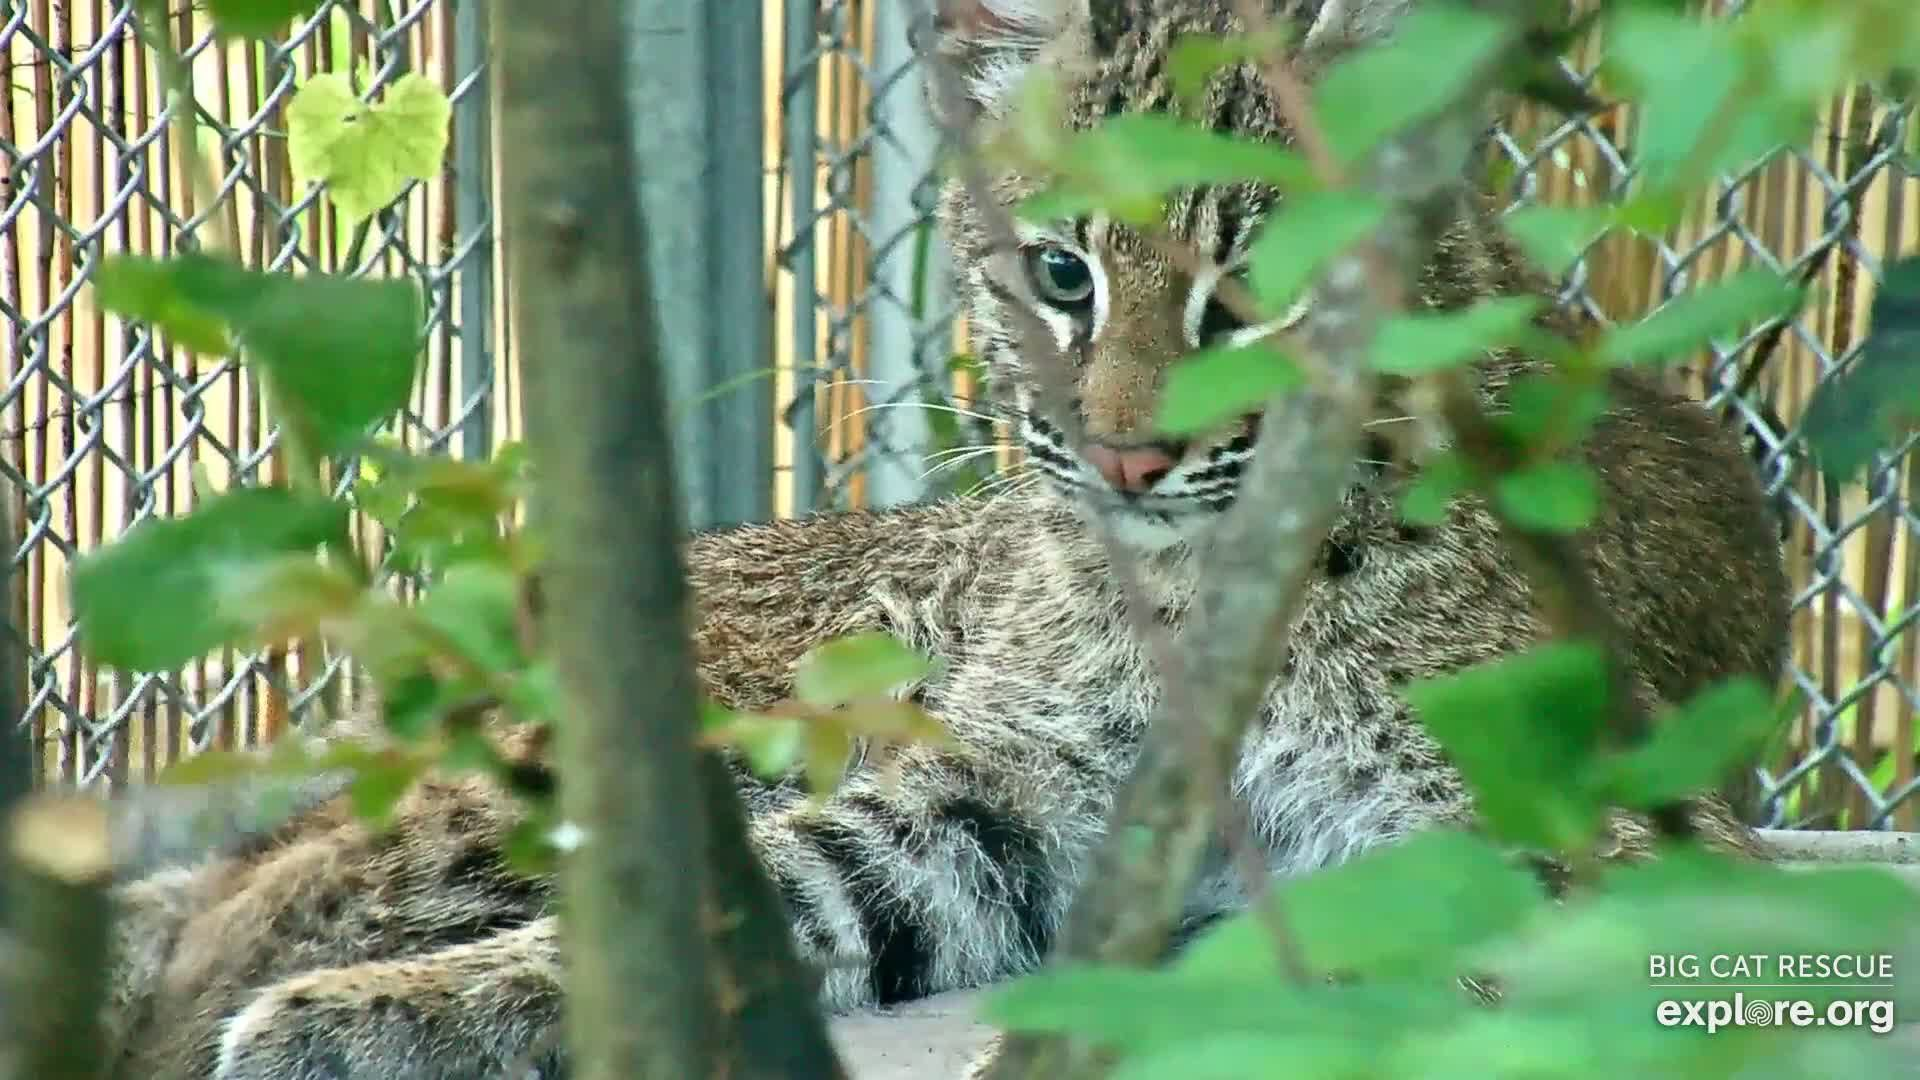 I M Watching The Big Cat Rescue Cam Streaming Live On Explore Org Big Cat Rescue Cat Rescue Snapshots